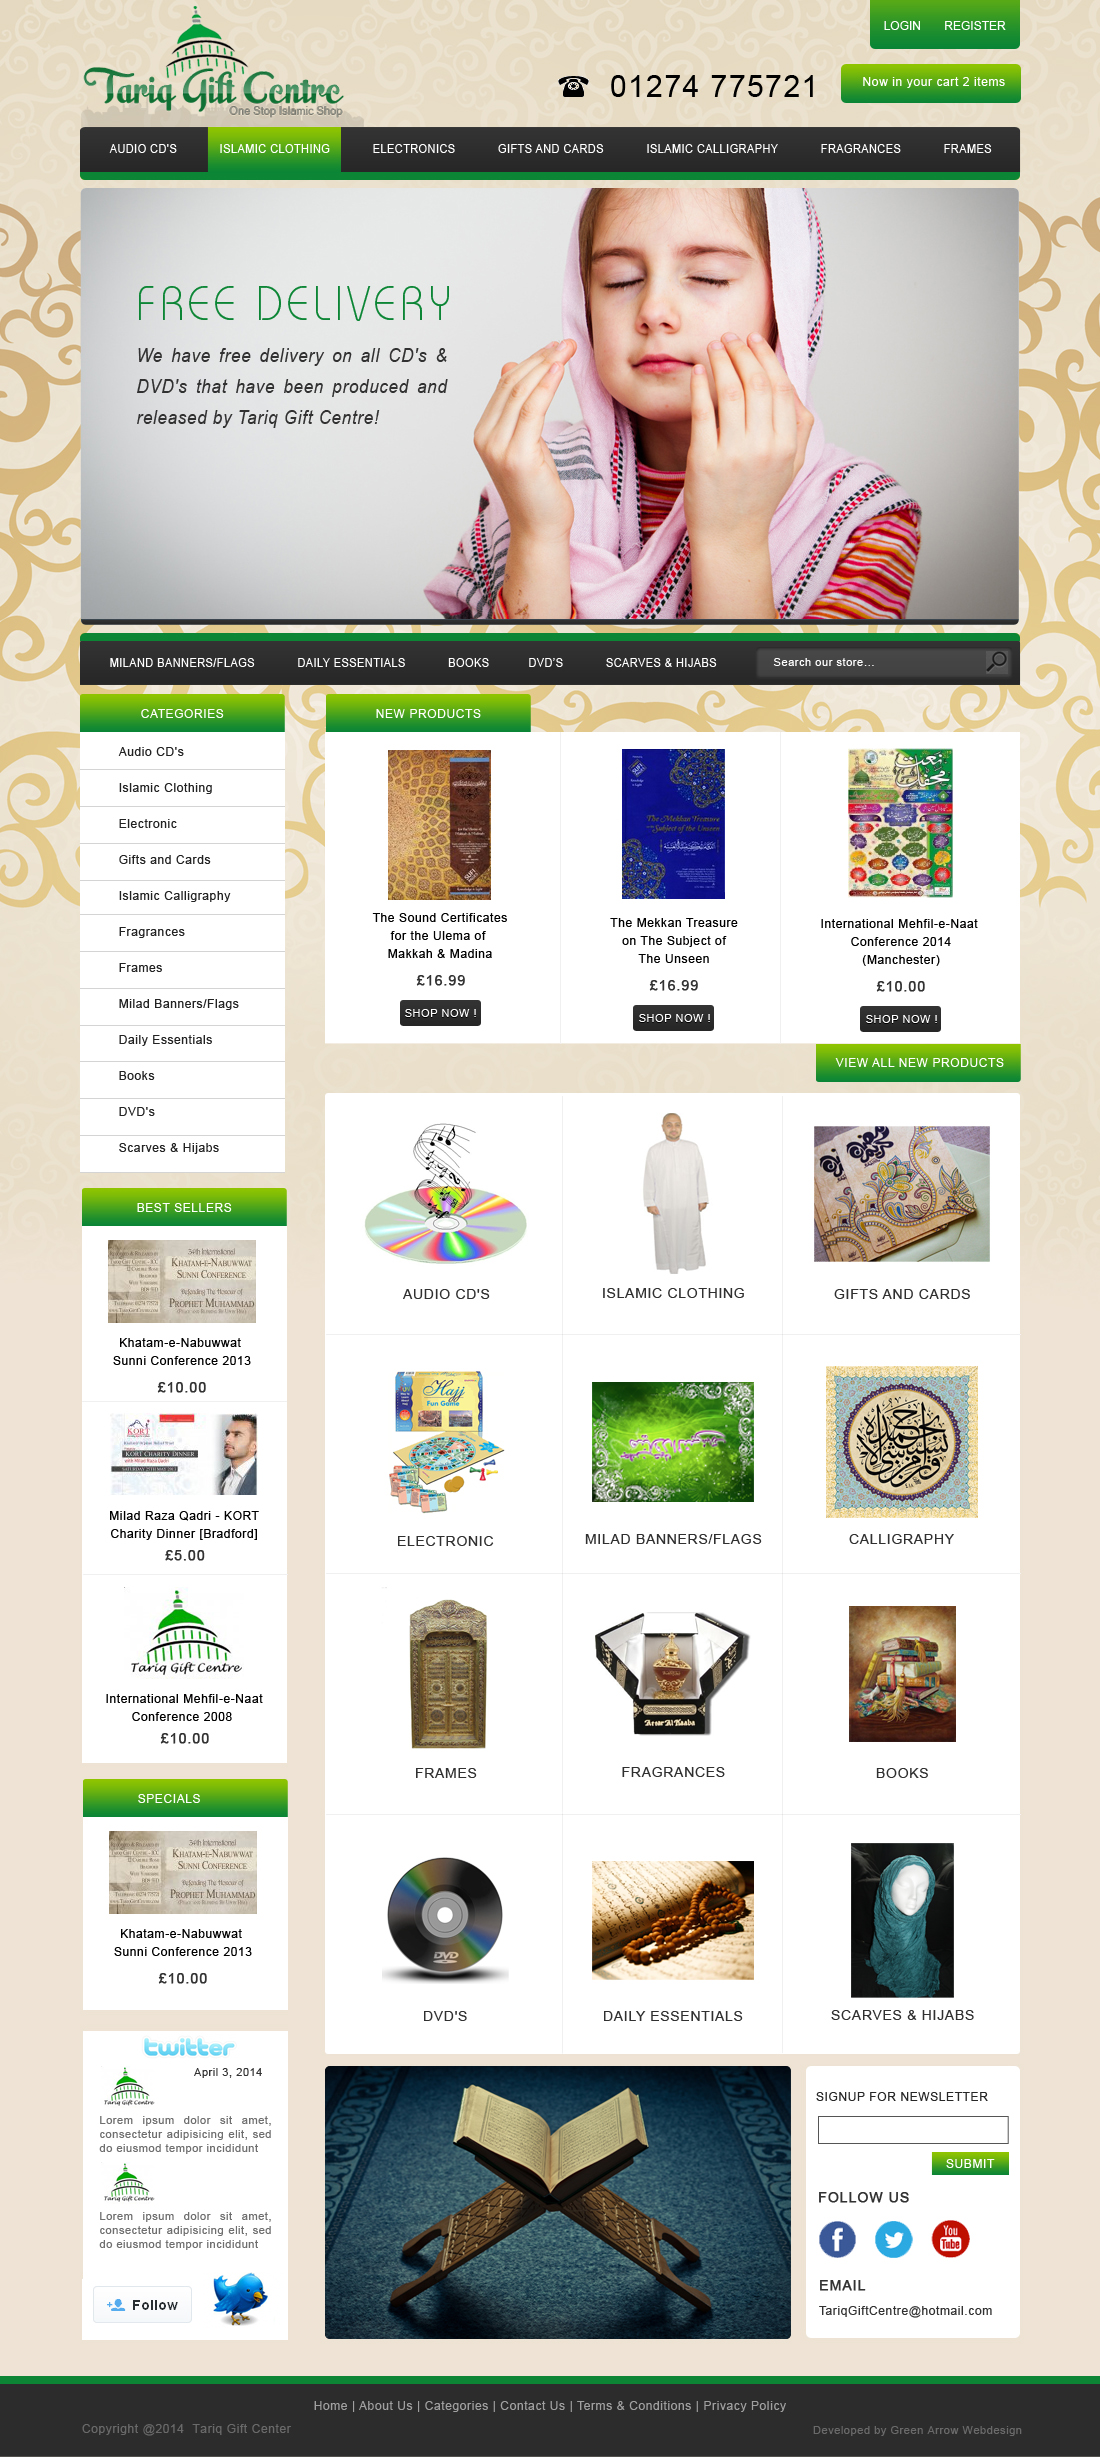 tariq gifts online shop website hd1 web design. Black Bedroom Furniture Sets. Home Design Ideas